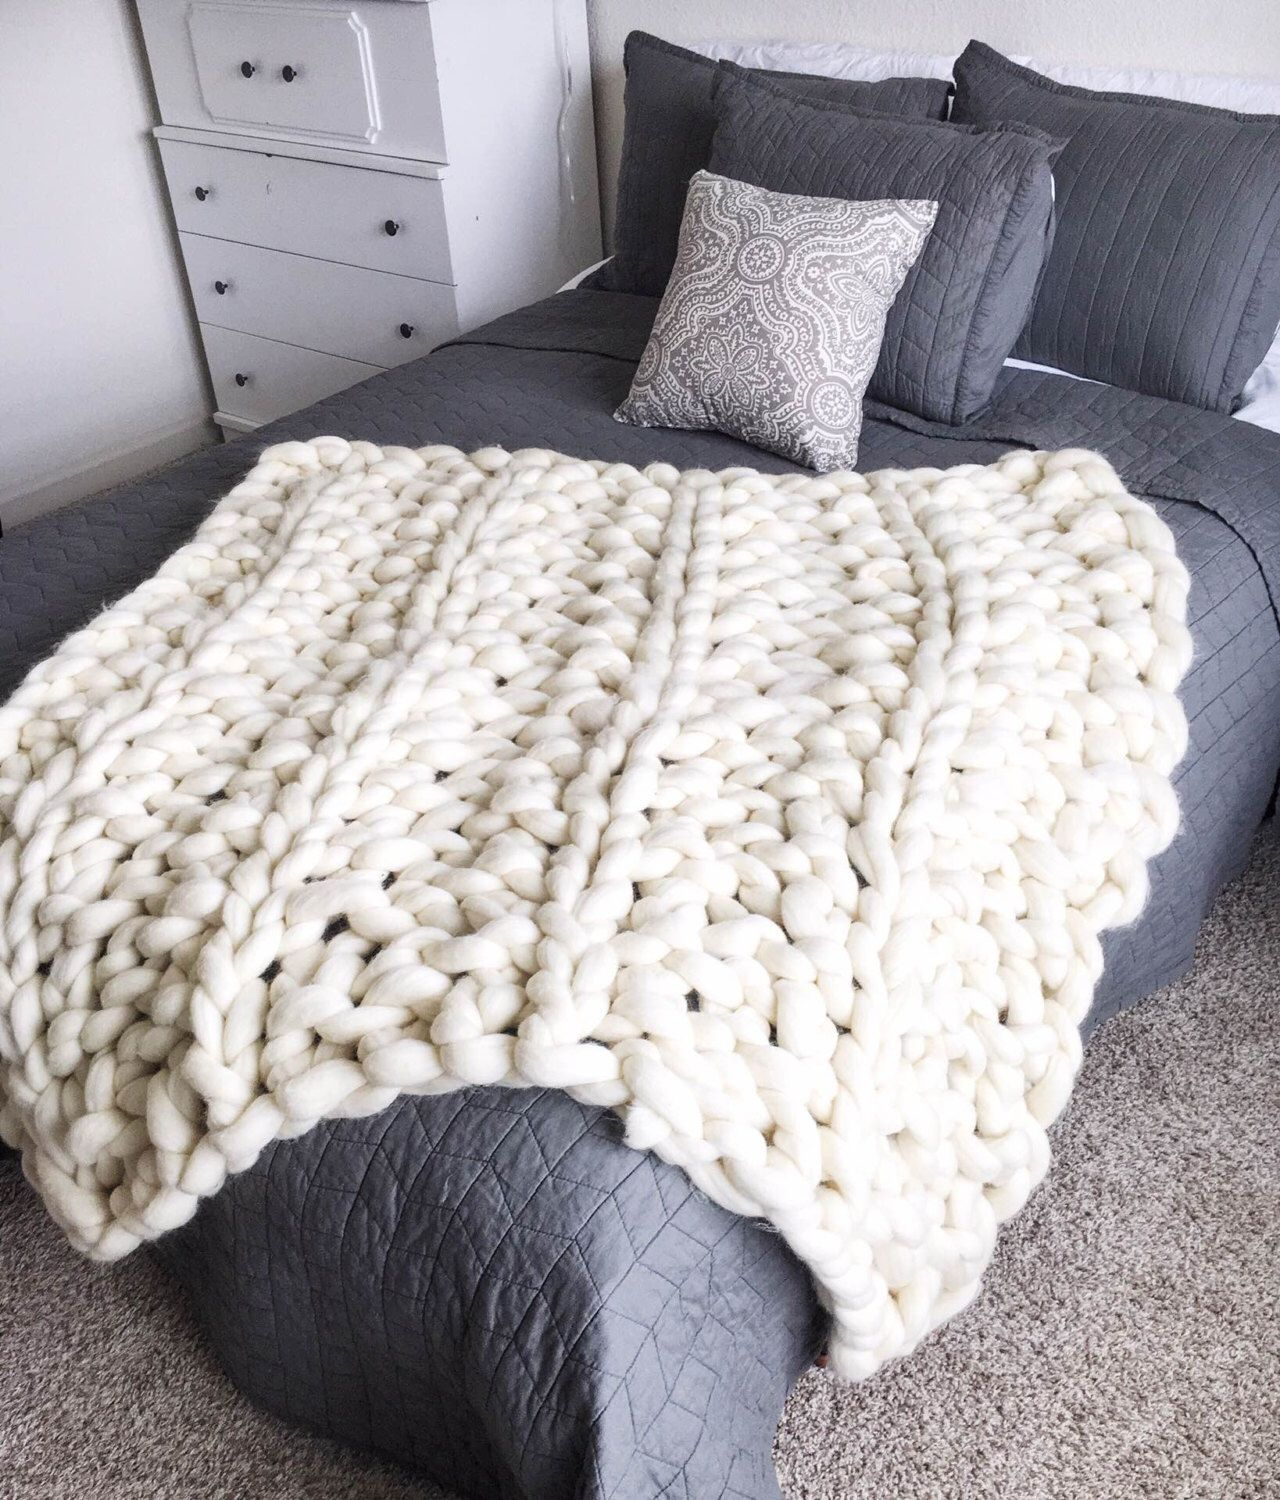 Knitting A Chunky Blanket : Giant chunky arm knit blanket by creationsbykaitlan on